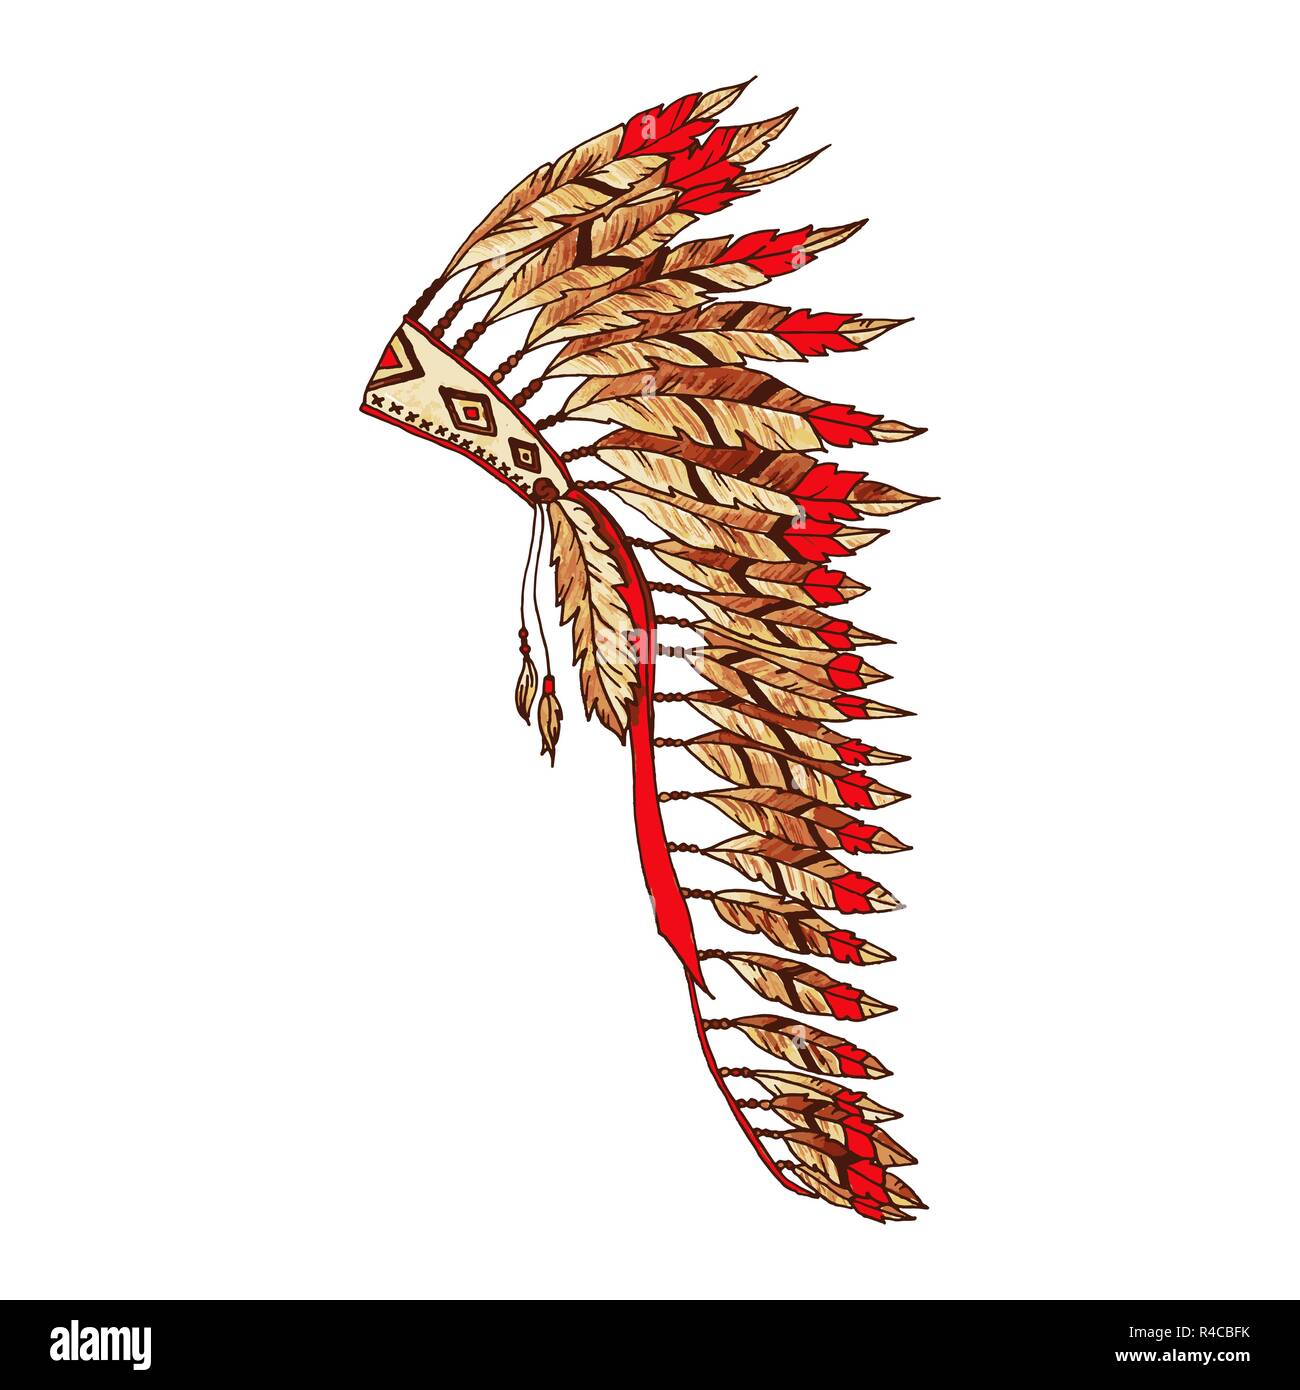 American painted Warbonnet Artwork. Eagle Feathers Hat. Native Indian Colorful Accessory. Headdress Realistic Drawing. Thanksgiving and Halloween Costume Item. Red and Beige Emblem, Isolated Element. - Stock Image